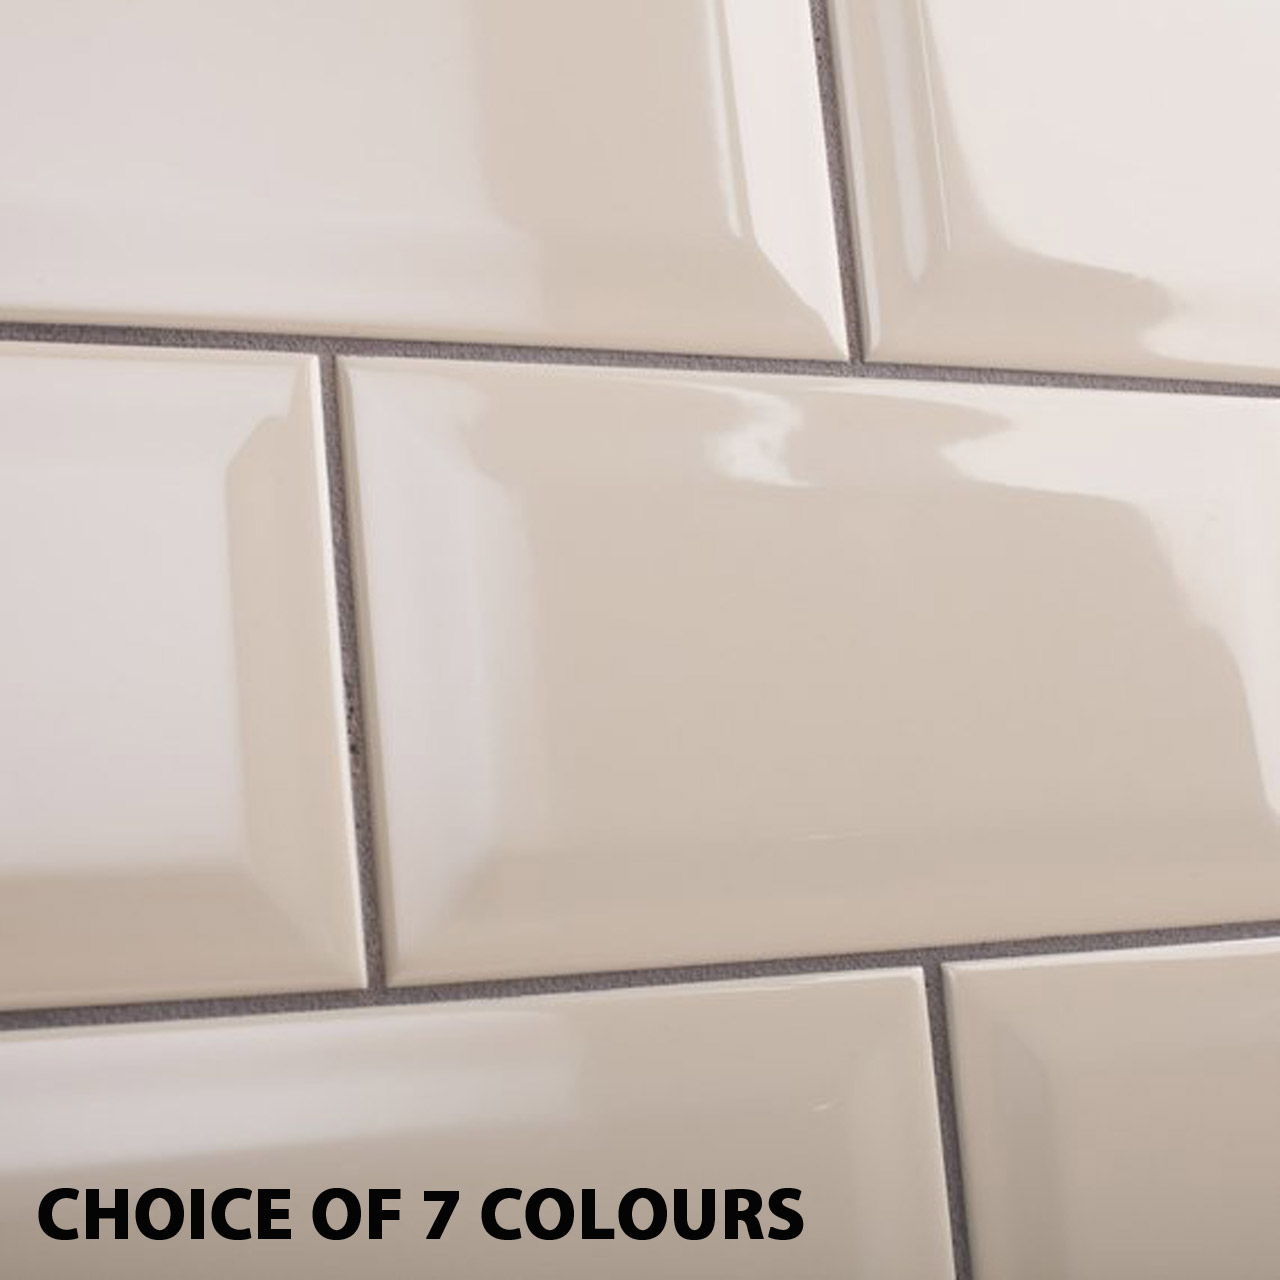 5m 200x100mm metro bevel wall tile bundle inc adhesive grout and spacers 6 colour options